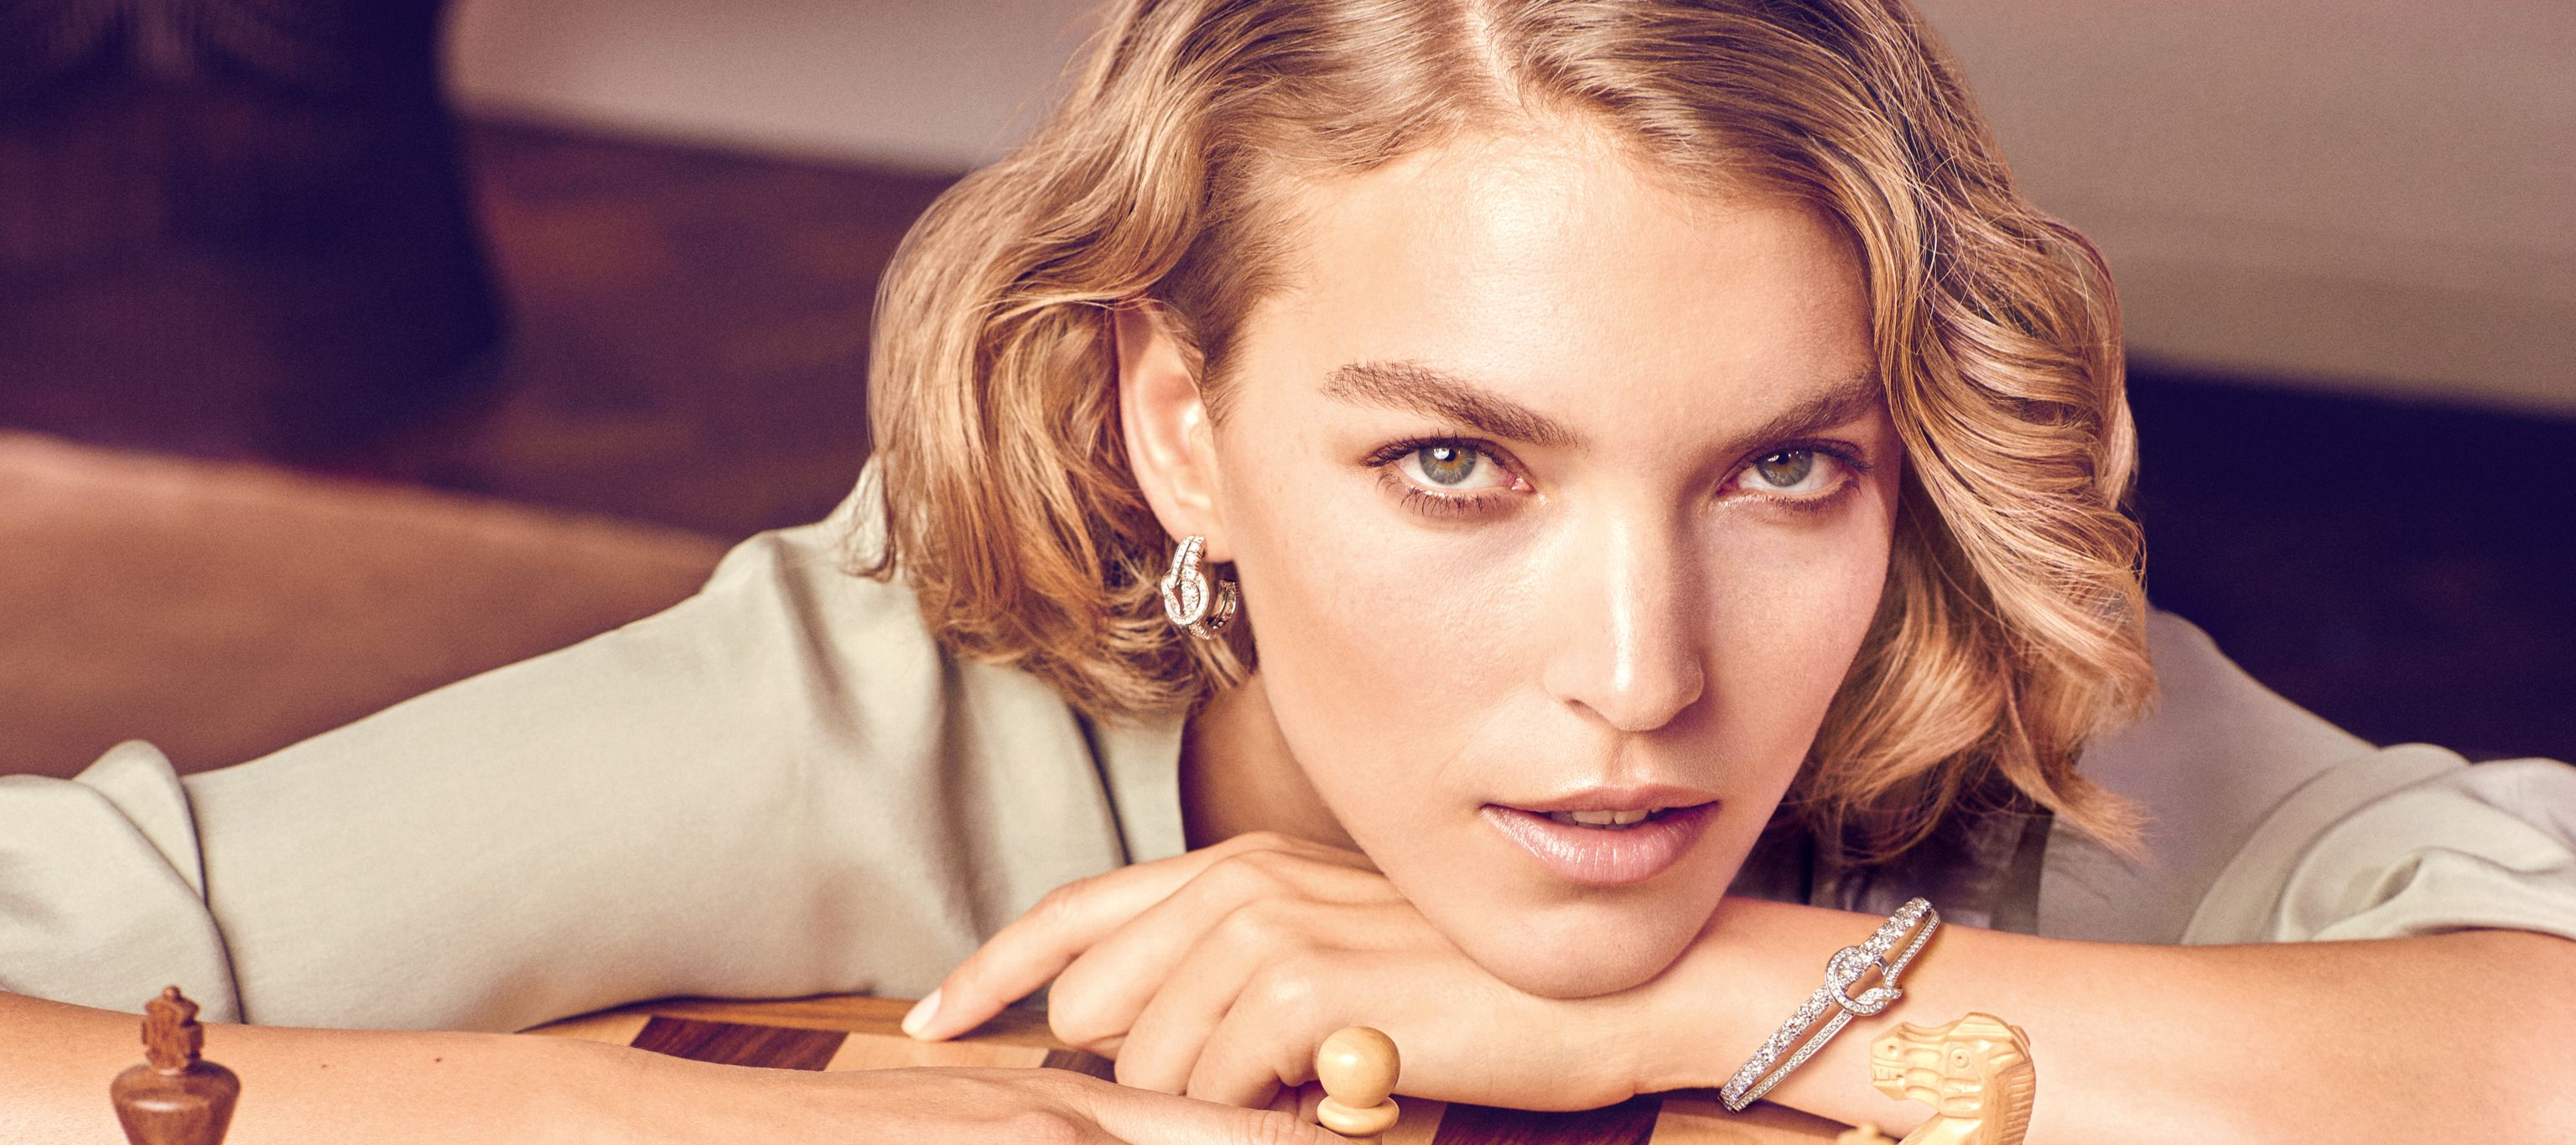 Boodles Campaign Featuring Arizona Muse In The Knot Collection Britain Is A Seafaring